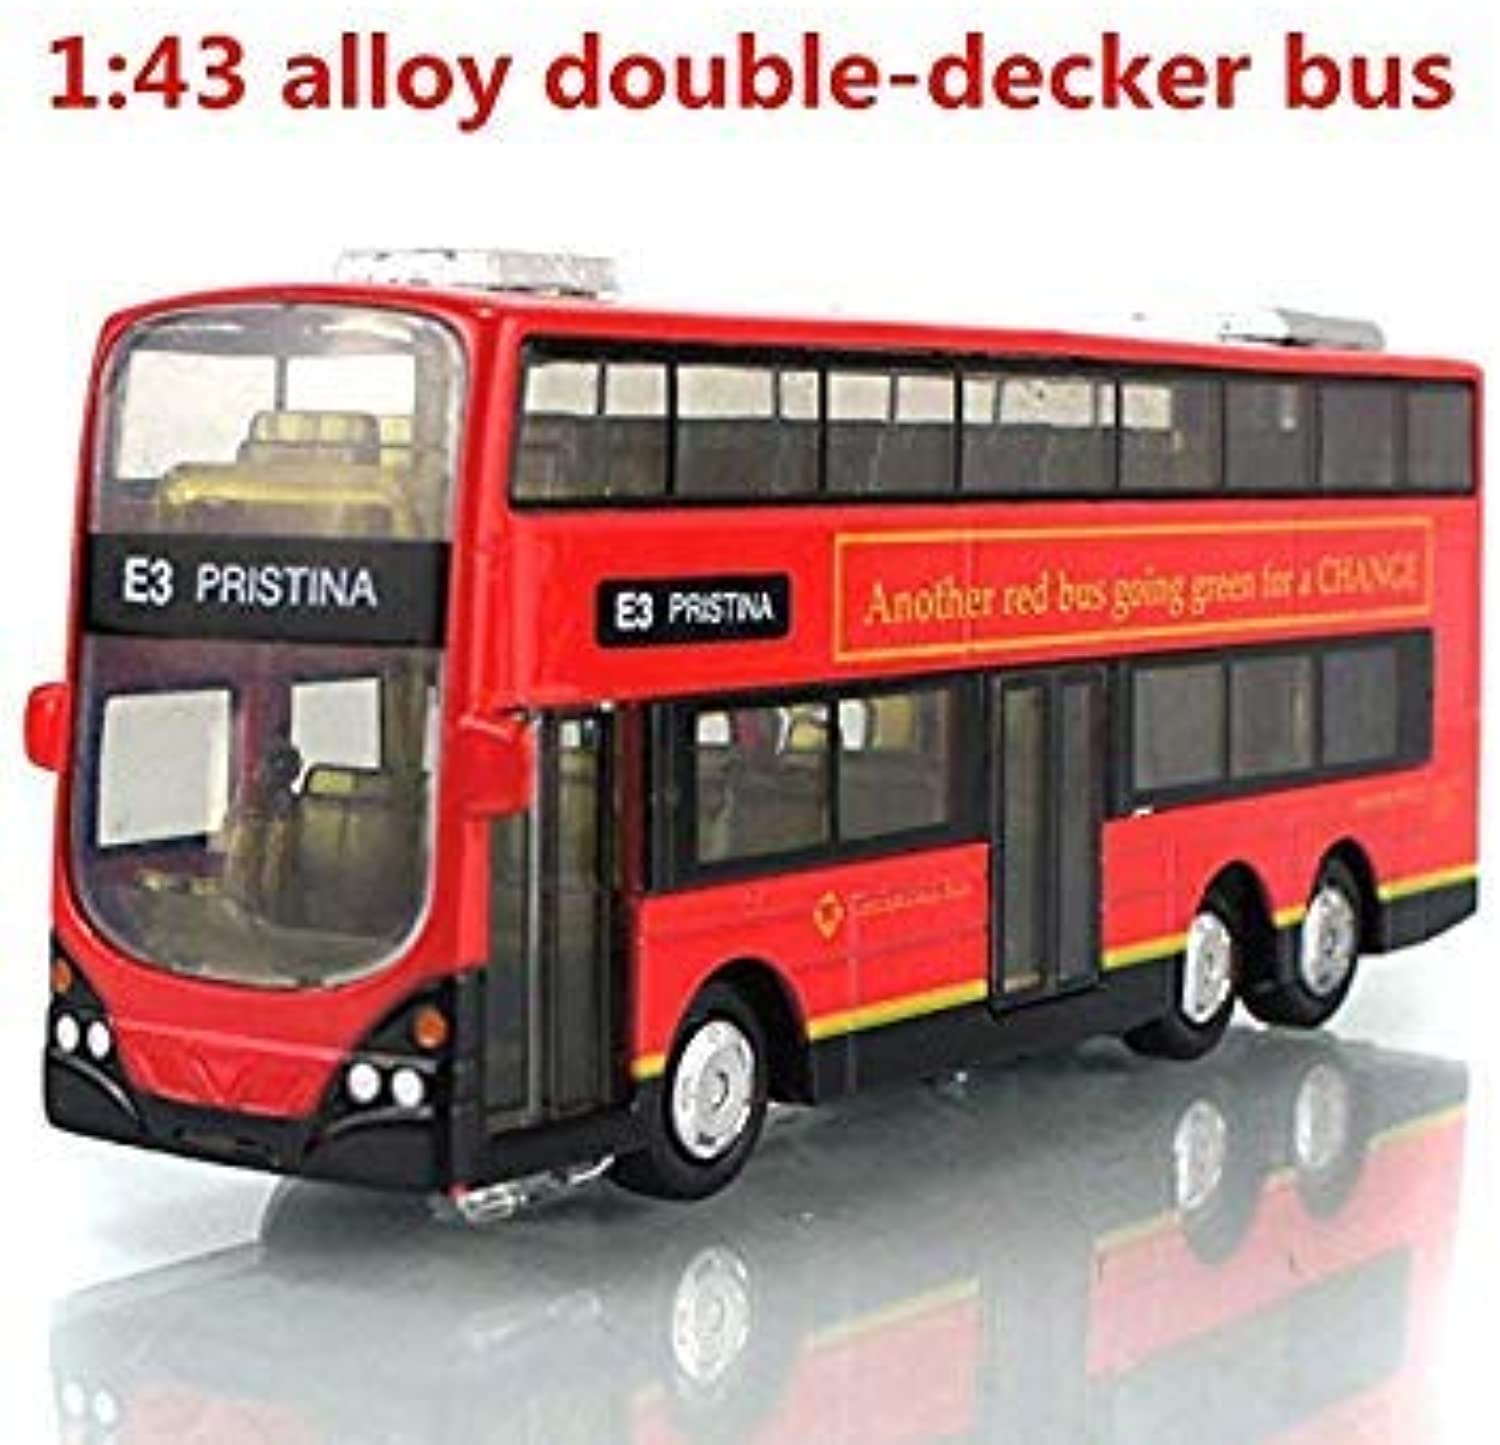 1 43 Alloy DoubleDecker Bus, City Bus high Simulation Model, Metal diecasts, Pull Back & Flashing & Musical